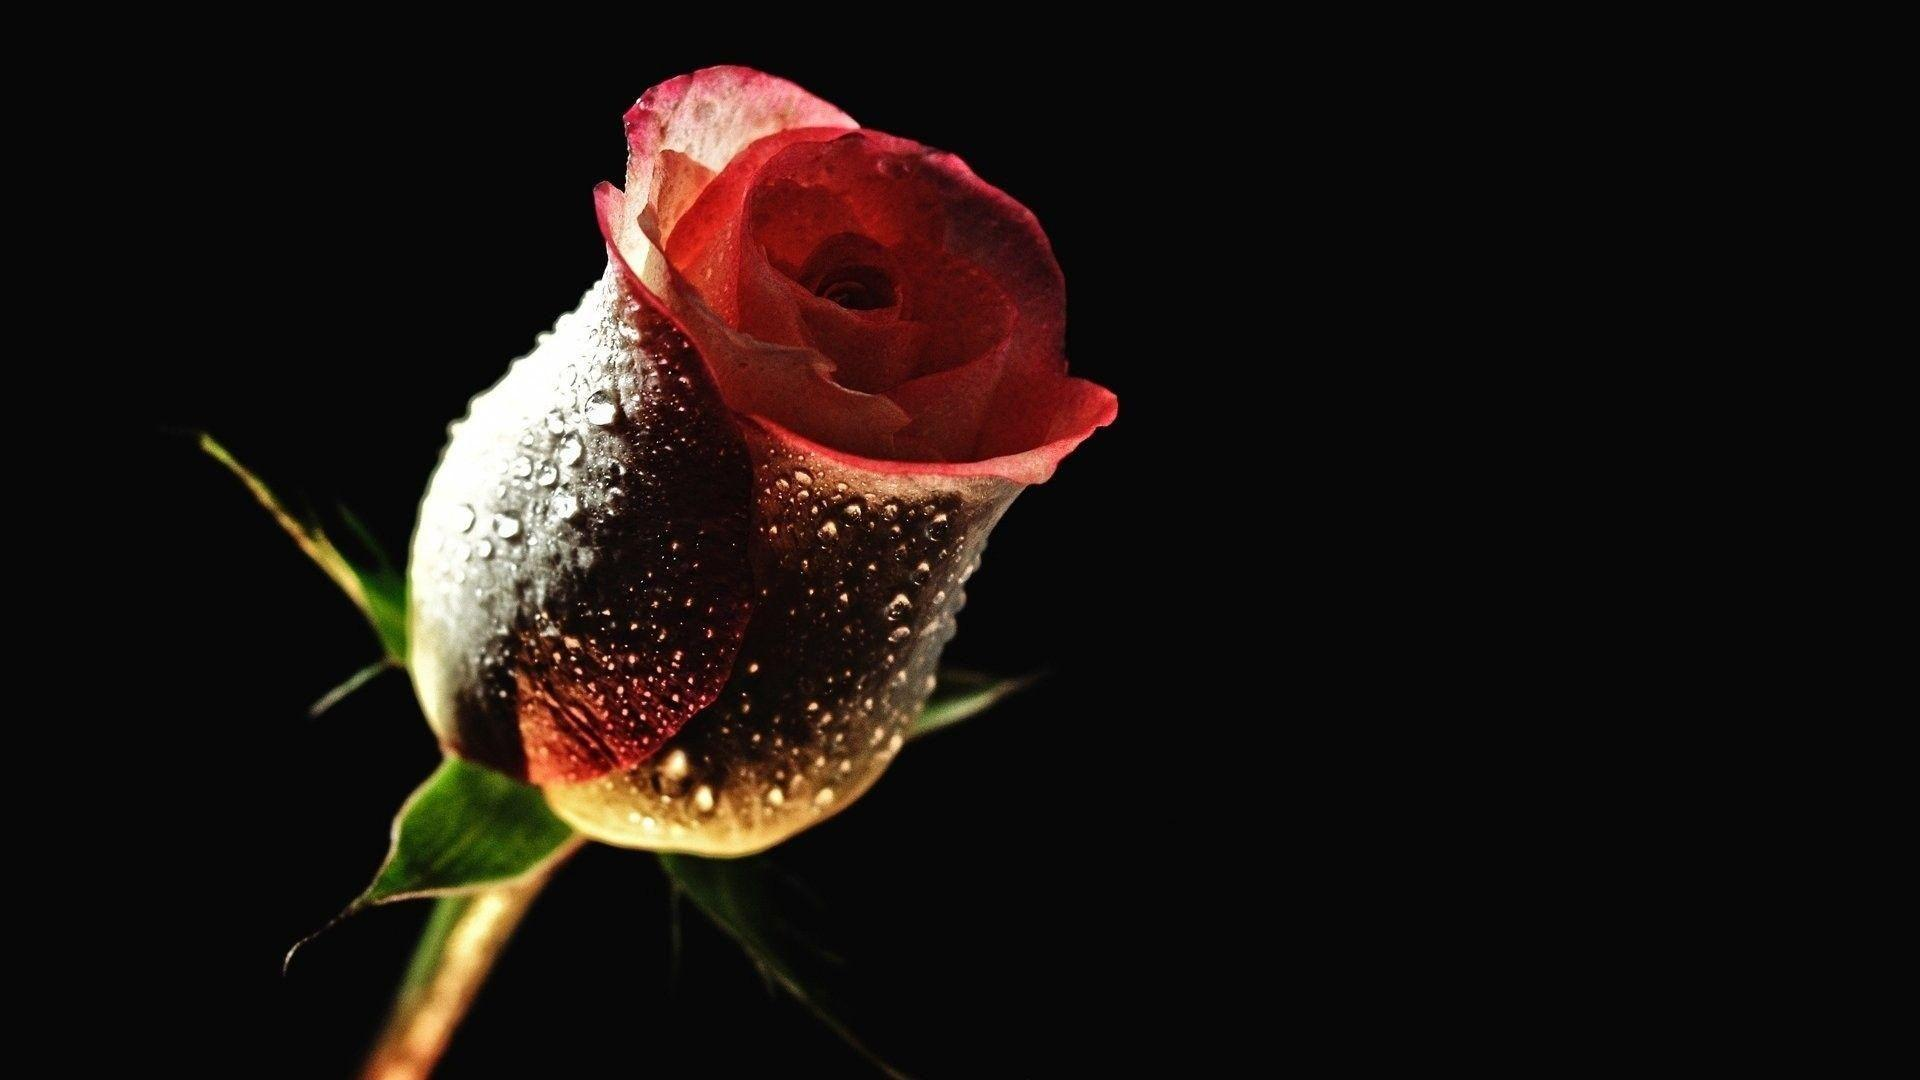 Rose Flowers Hd Wallpapers Wallpaper Cave